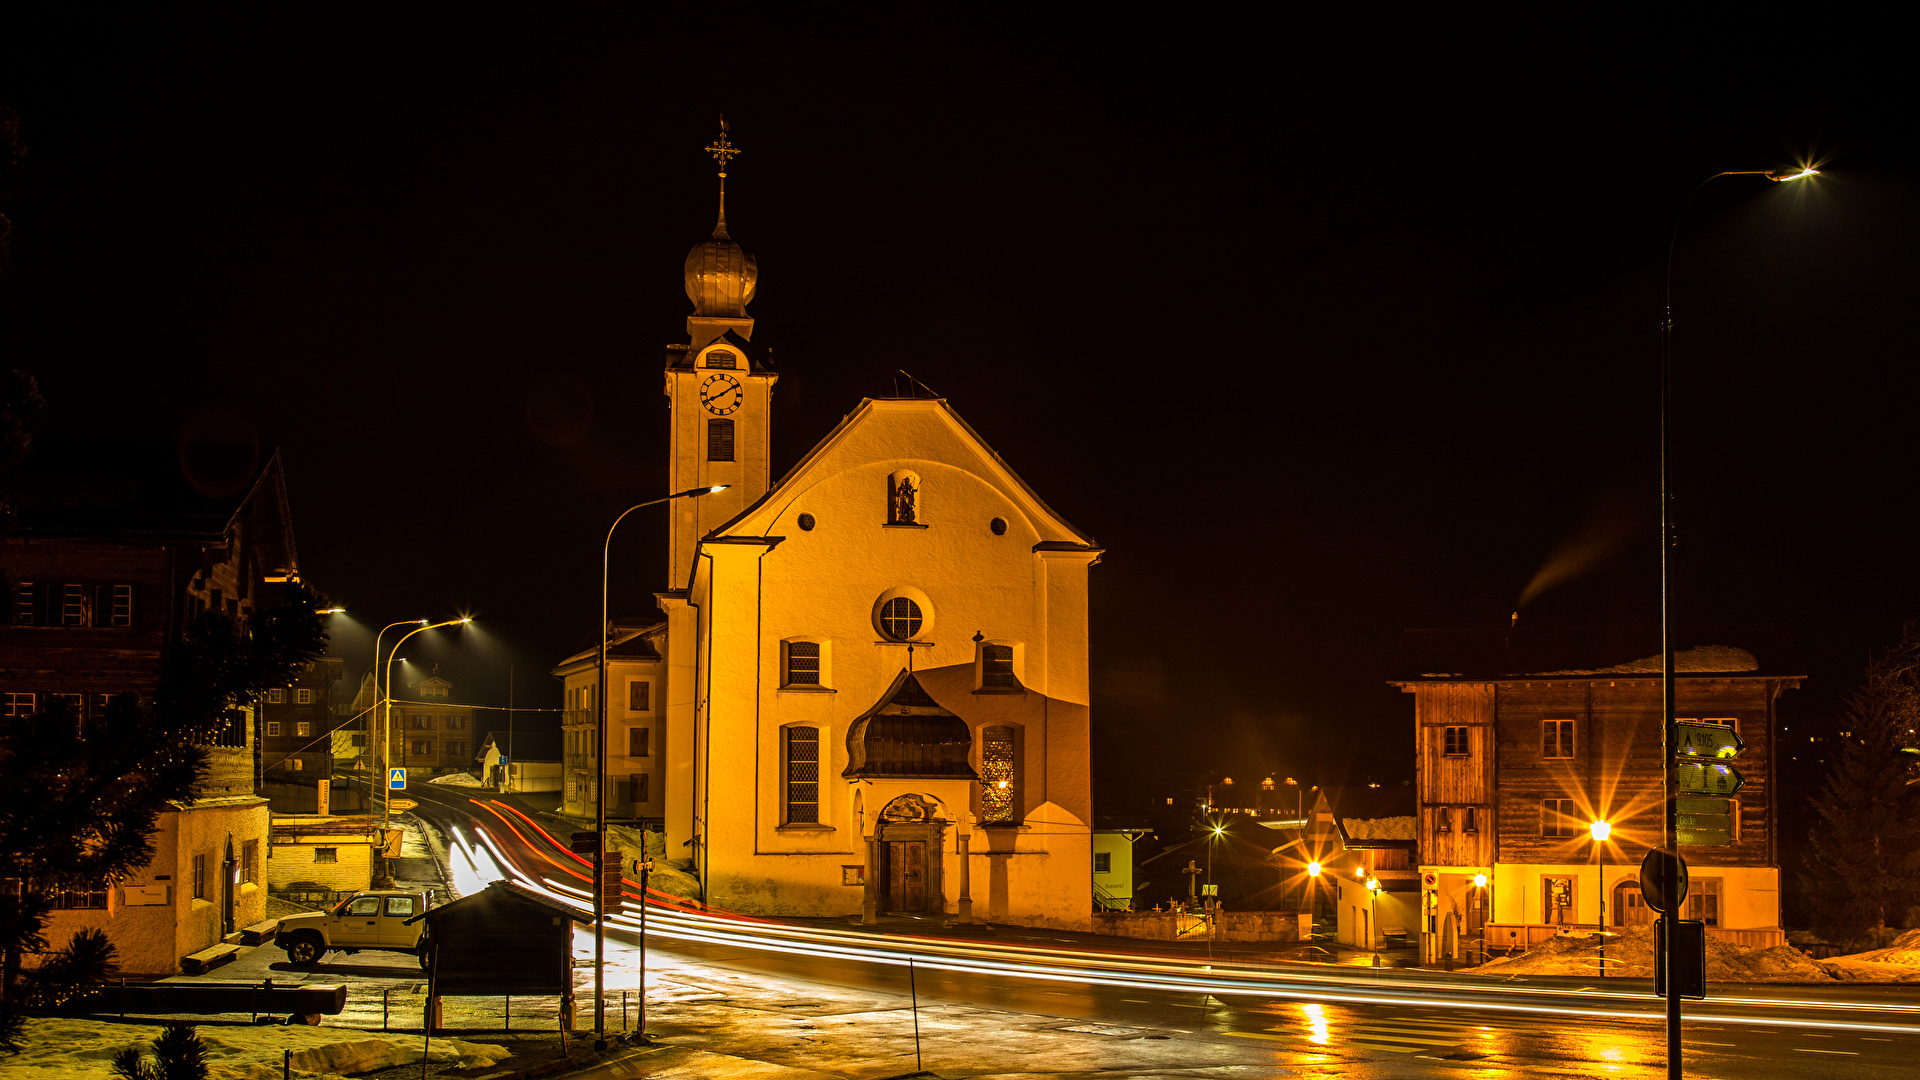 Pictures Switzerland Reckingen Roads Street temple night time Street lights Cities Building 1920x1080 Night Temples Houses